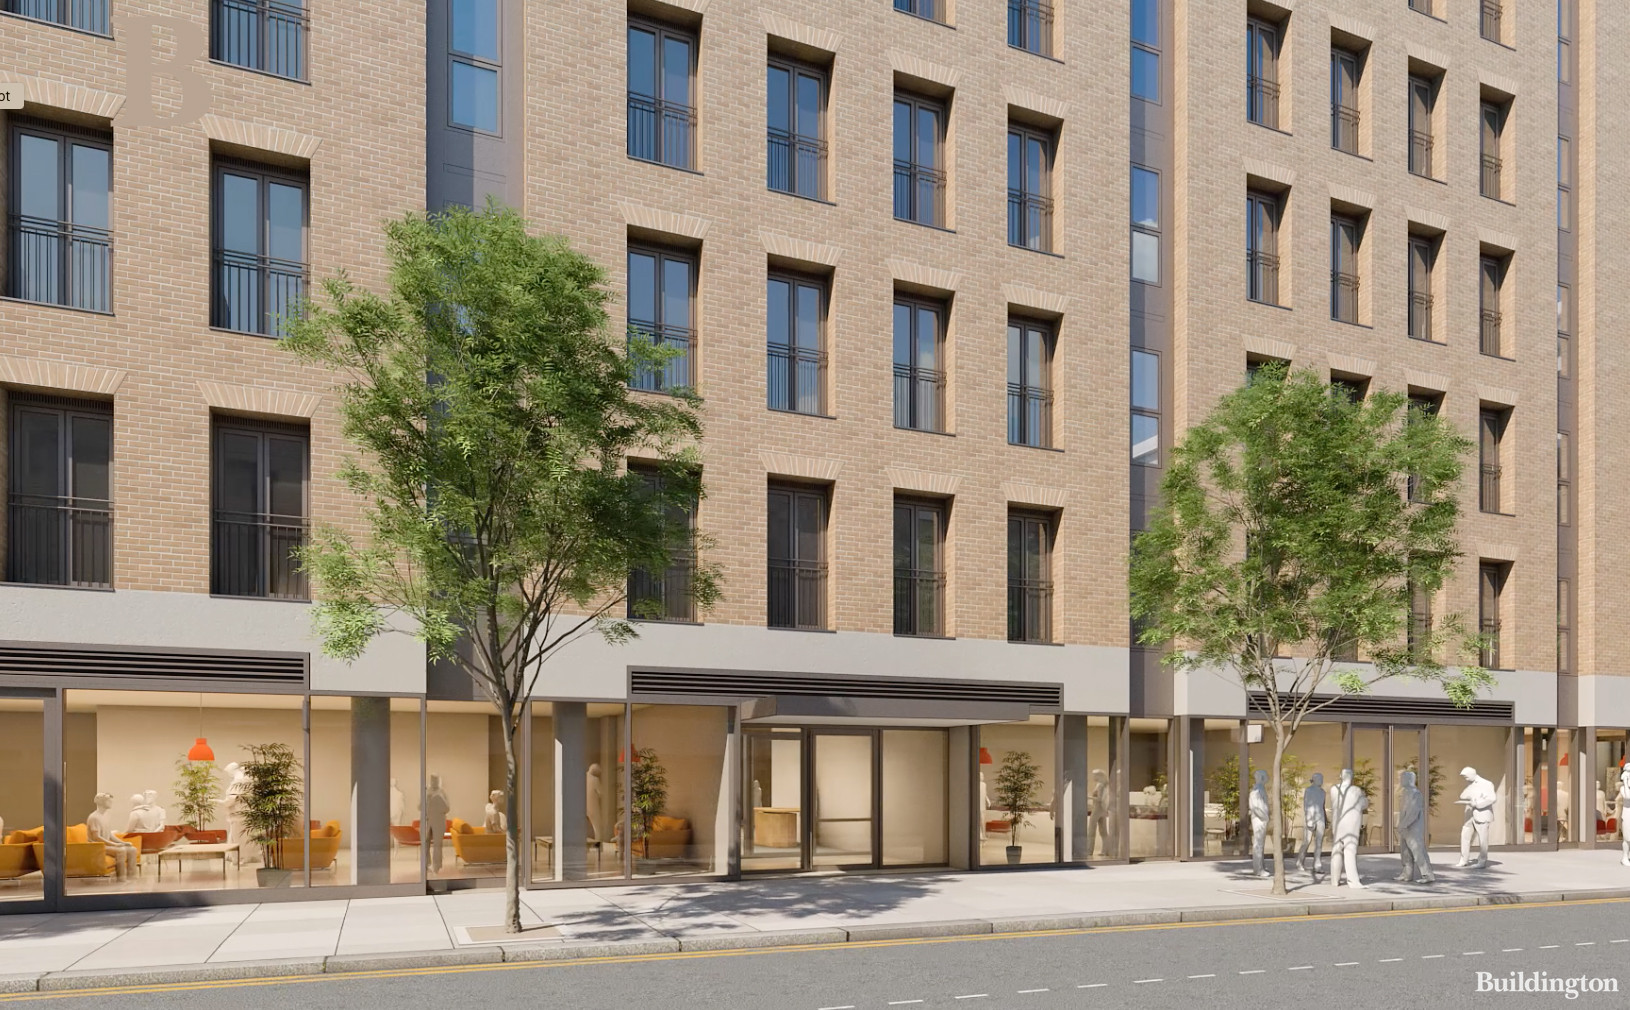 CGI of 100 George Street building designed by Hopkins Architects containing 35 apartments and 6 penthouses.